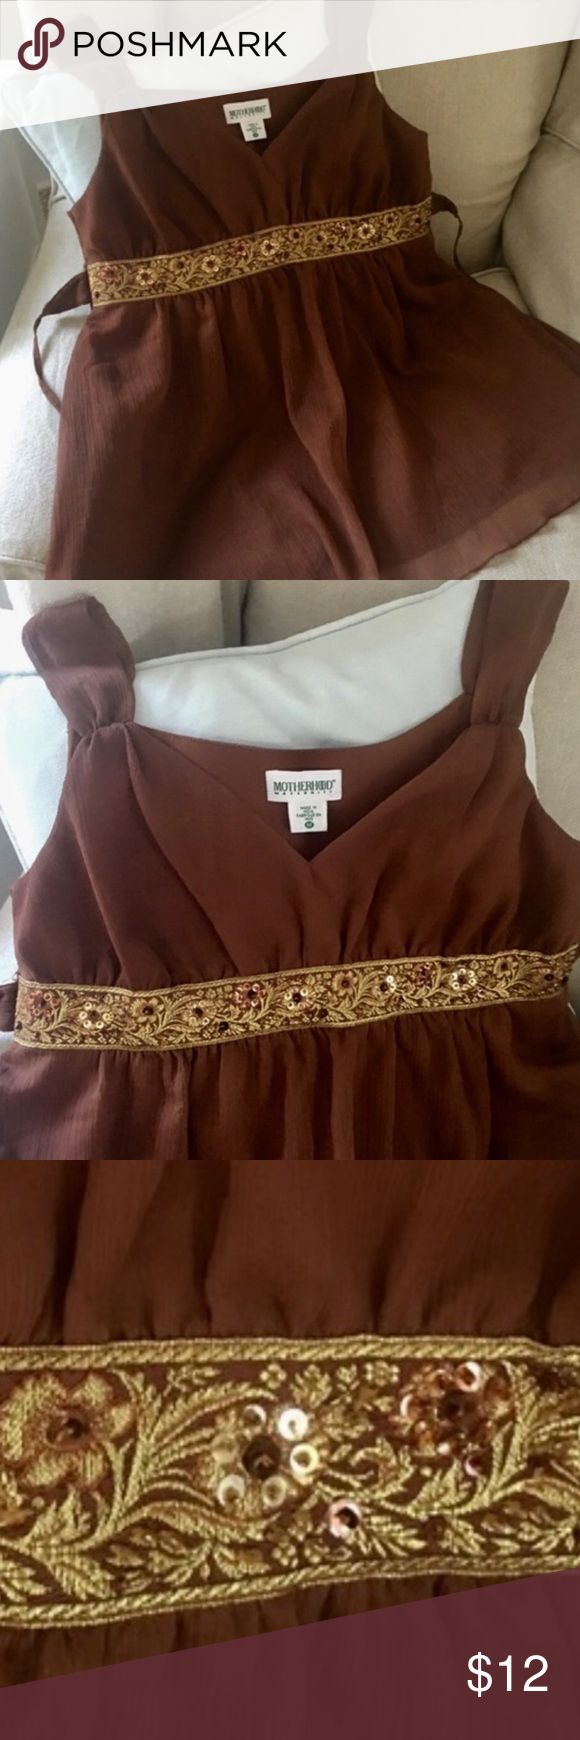 Motherhood boho cool embroidered bling top Get stylin' momma bear, you deserve to look sexy in this Motherhood Boho beauty! Gorgeous chocolate color is enhanced by golden shimmery embroidery at the gathered top. You will feel comfy and cool while looking fabulous! In excellent condition ❤️   Please browse my closet; Anthropologie, Hollister, Aerie, American Eagle, Victoria's Secret, Free People, J Crew, LF, Eddie Bauer, Boston Proper, Express, Boho styles, boutique, Nike, Strasburg…